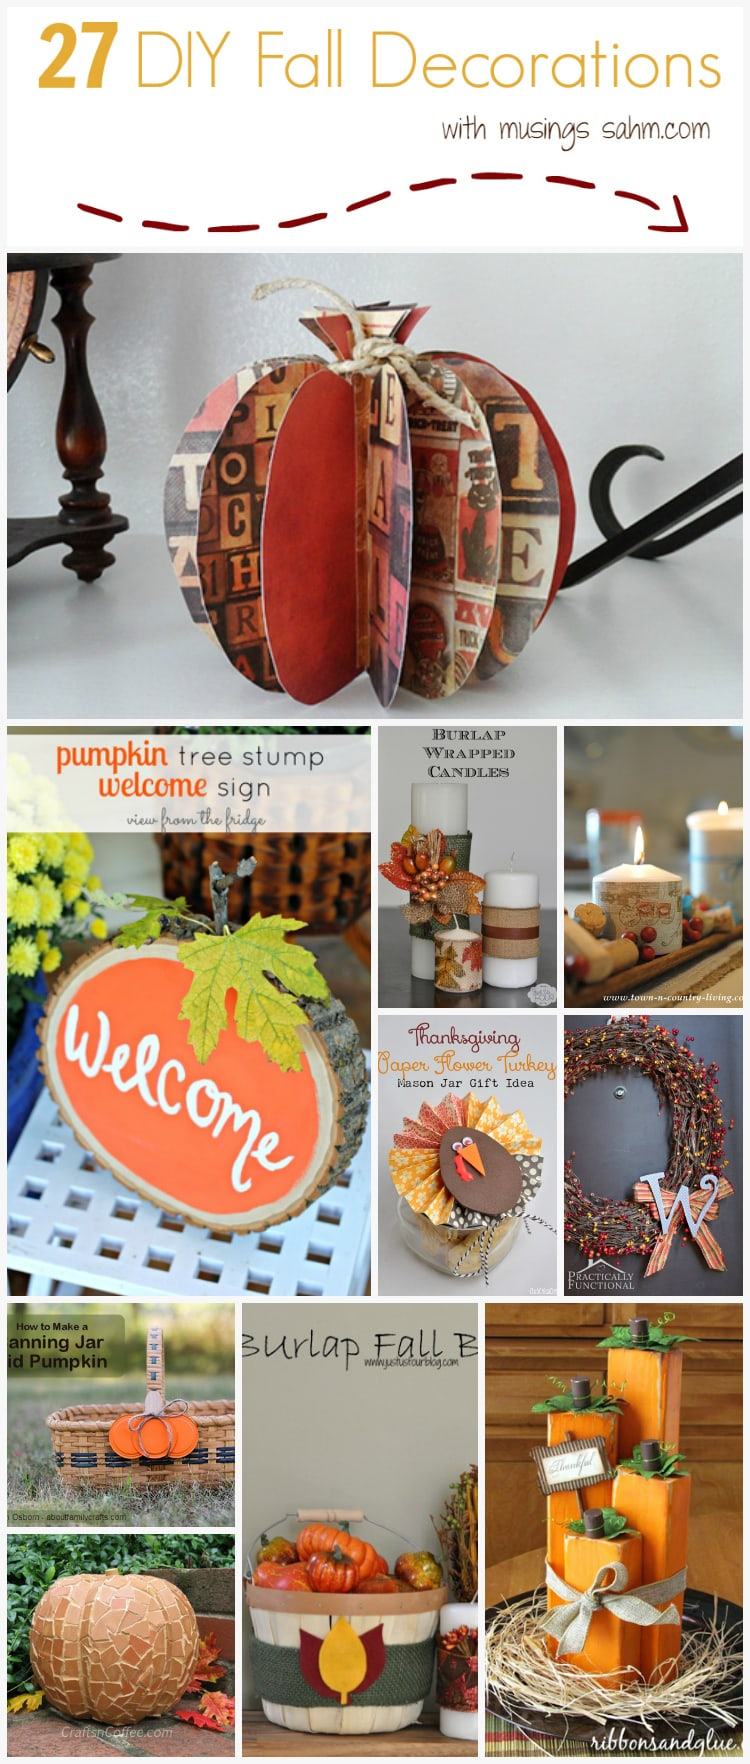 27 DIY Fall Decorations to make for your home you'll love! |crafts|autumn